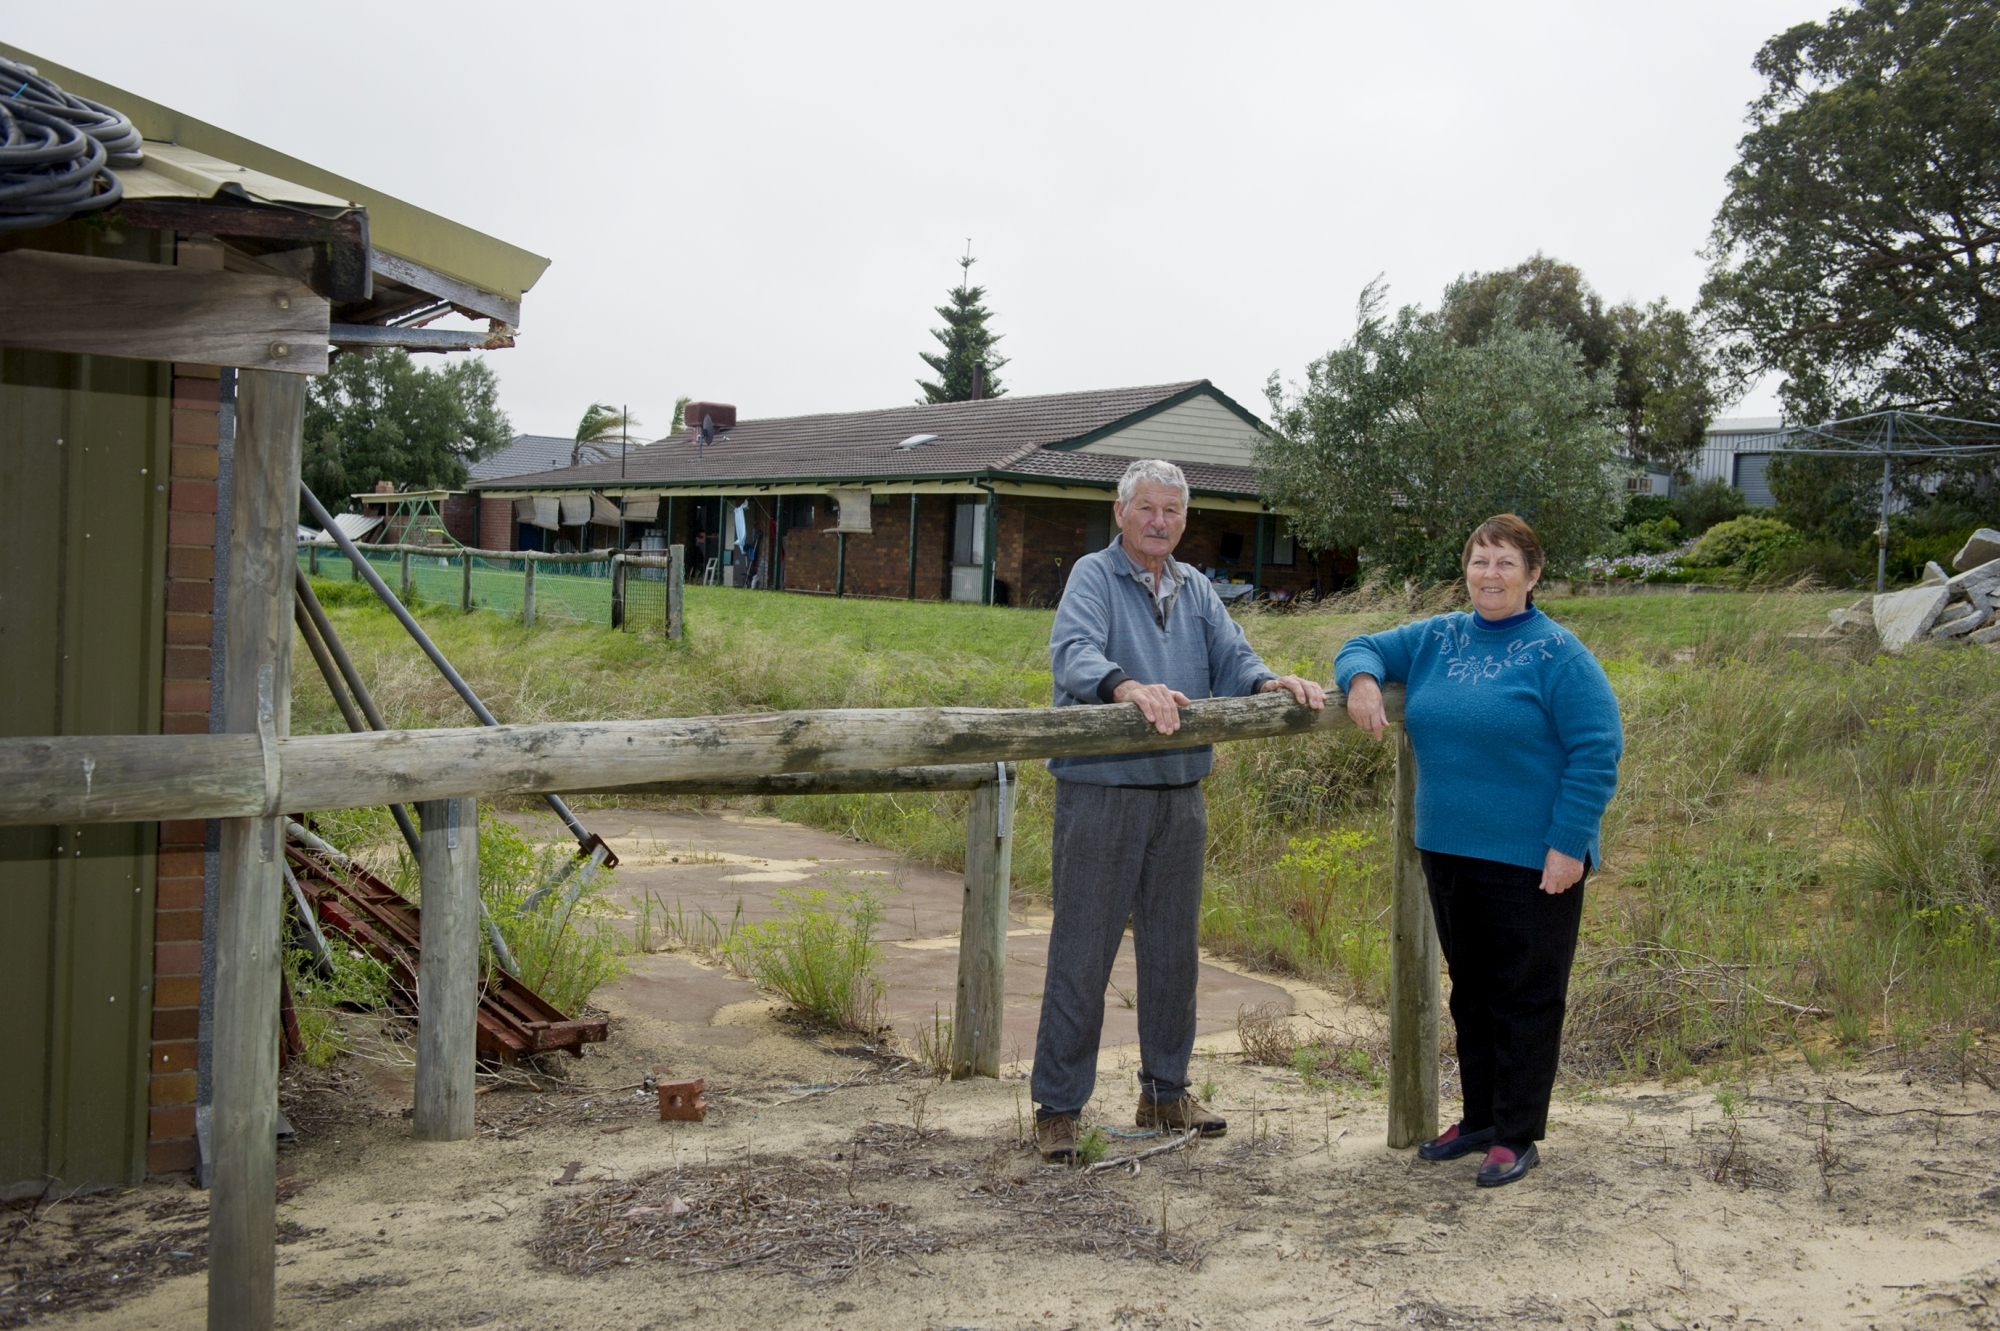 Mick and Judy Garbin have been pleading council since 2005 to allow them to build a new house on their land and bulldoze the old one, both houses are in the Inghams buffer zone.